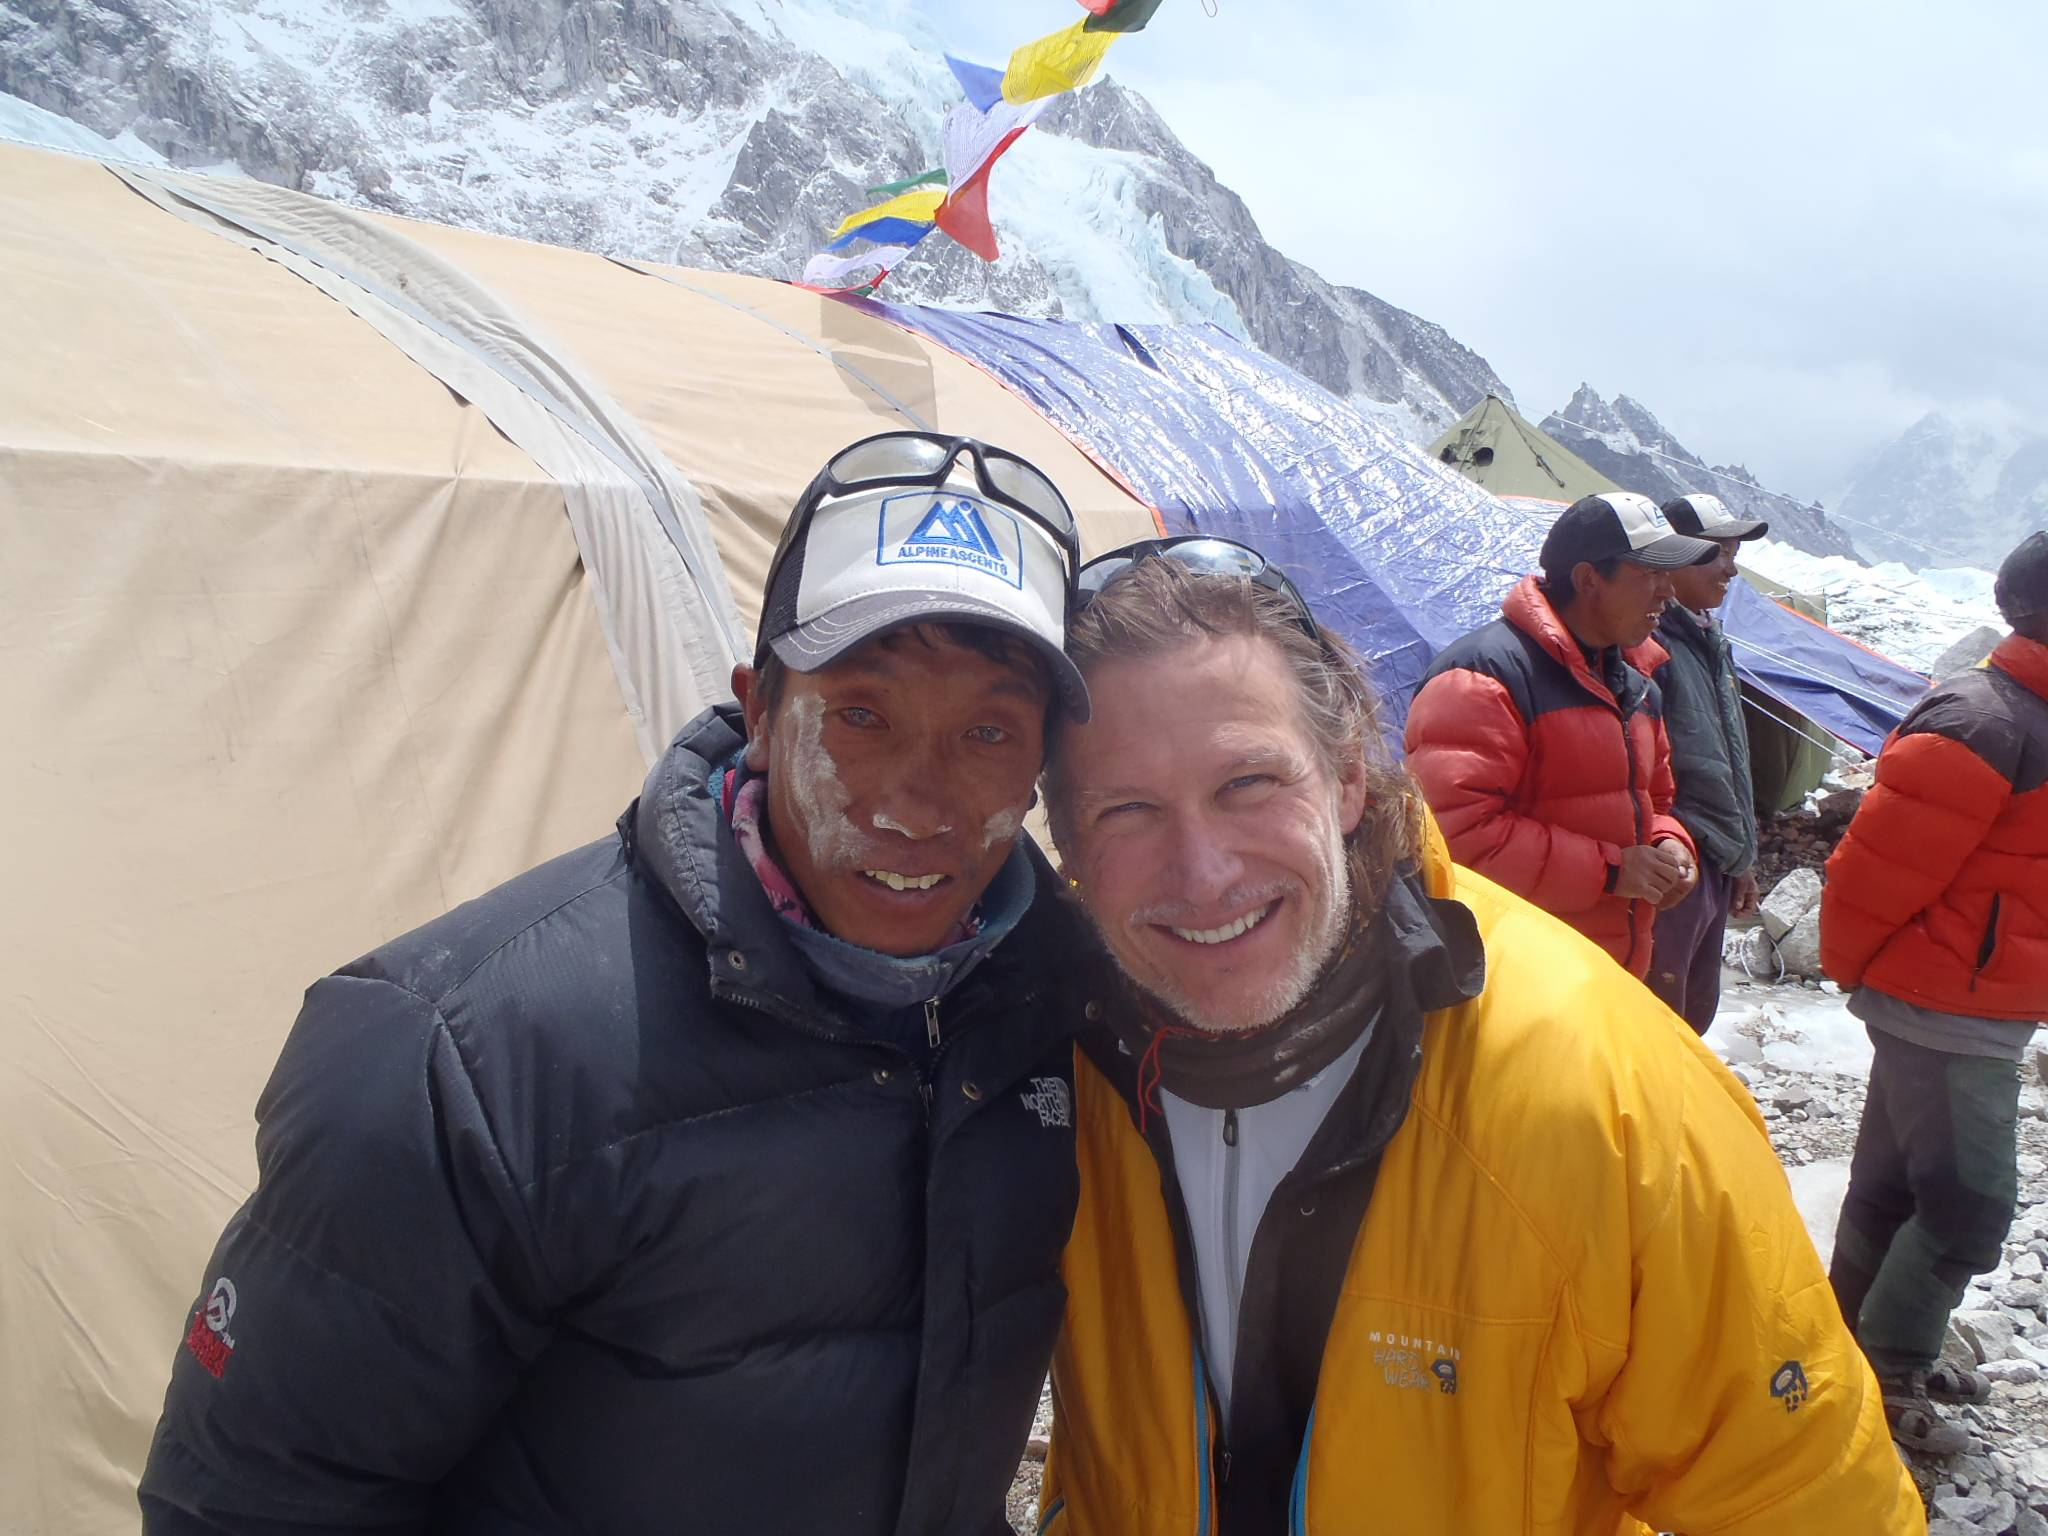 With white rice powder on his face from a 2014 puja ceremony blessing the next day's planned climb of Mount Everest, Sherpa Passang Therker, who survived last year's deadly avalanche, poses with climber Joel Schauer of Hawthorn Woods.